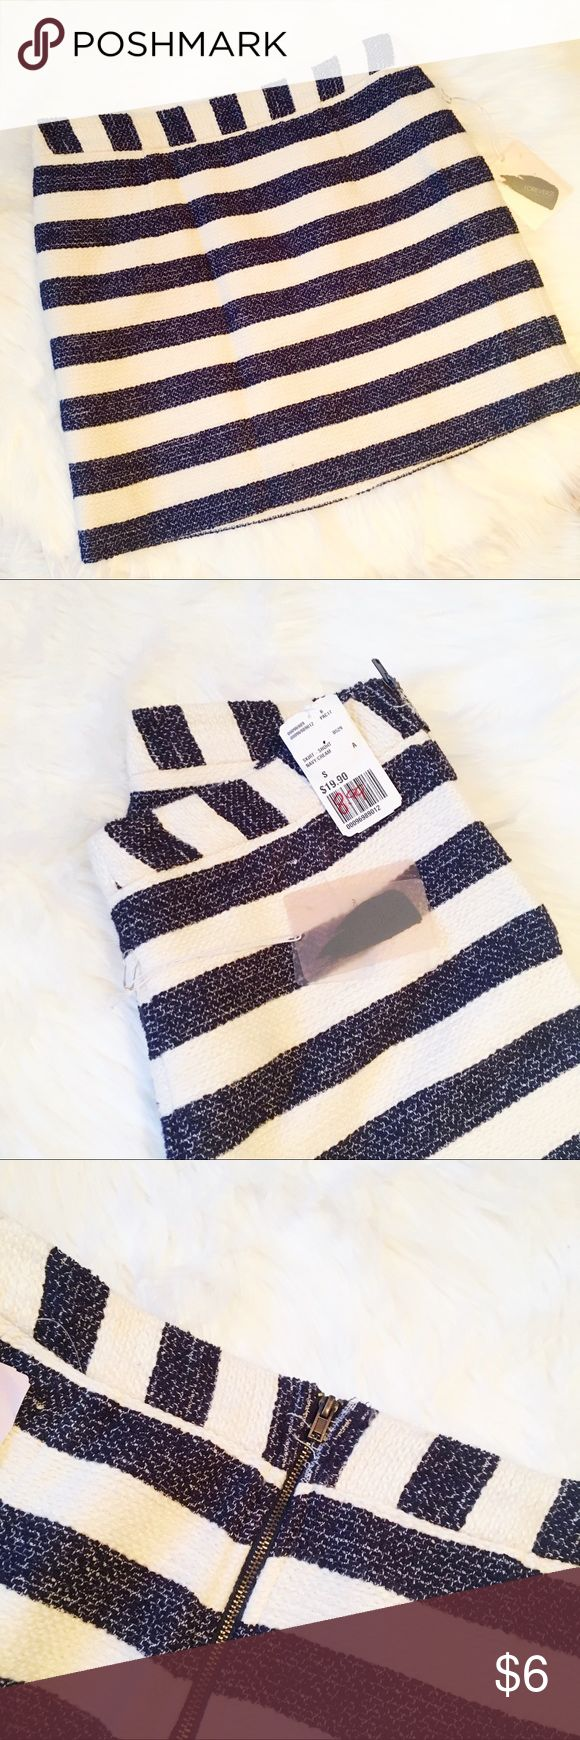 Striped skirt! Cream and navy striped skirt! New with tags! Forever 21 Skirts Mini